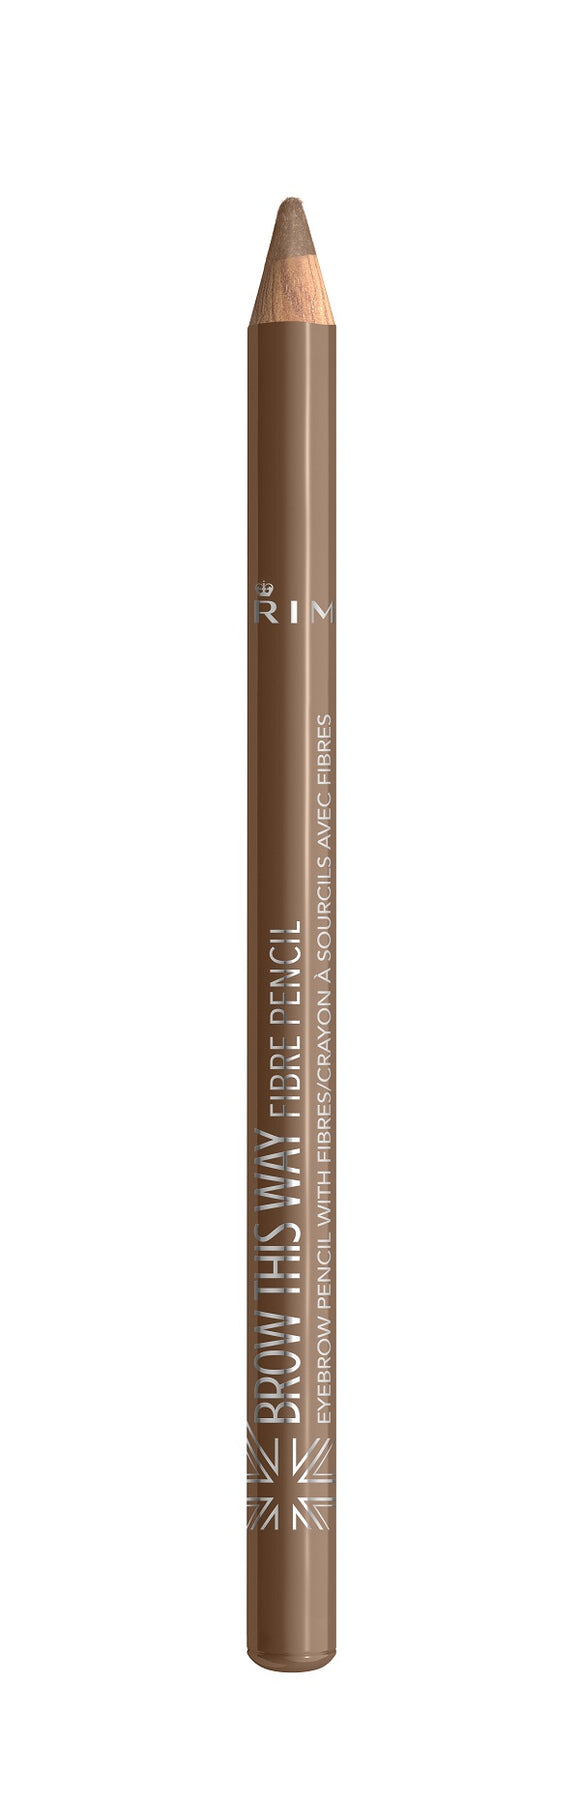 Rimmel Brow This Way Brow Pencil Fibre 001 Light